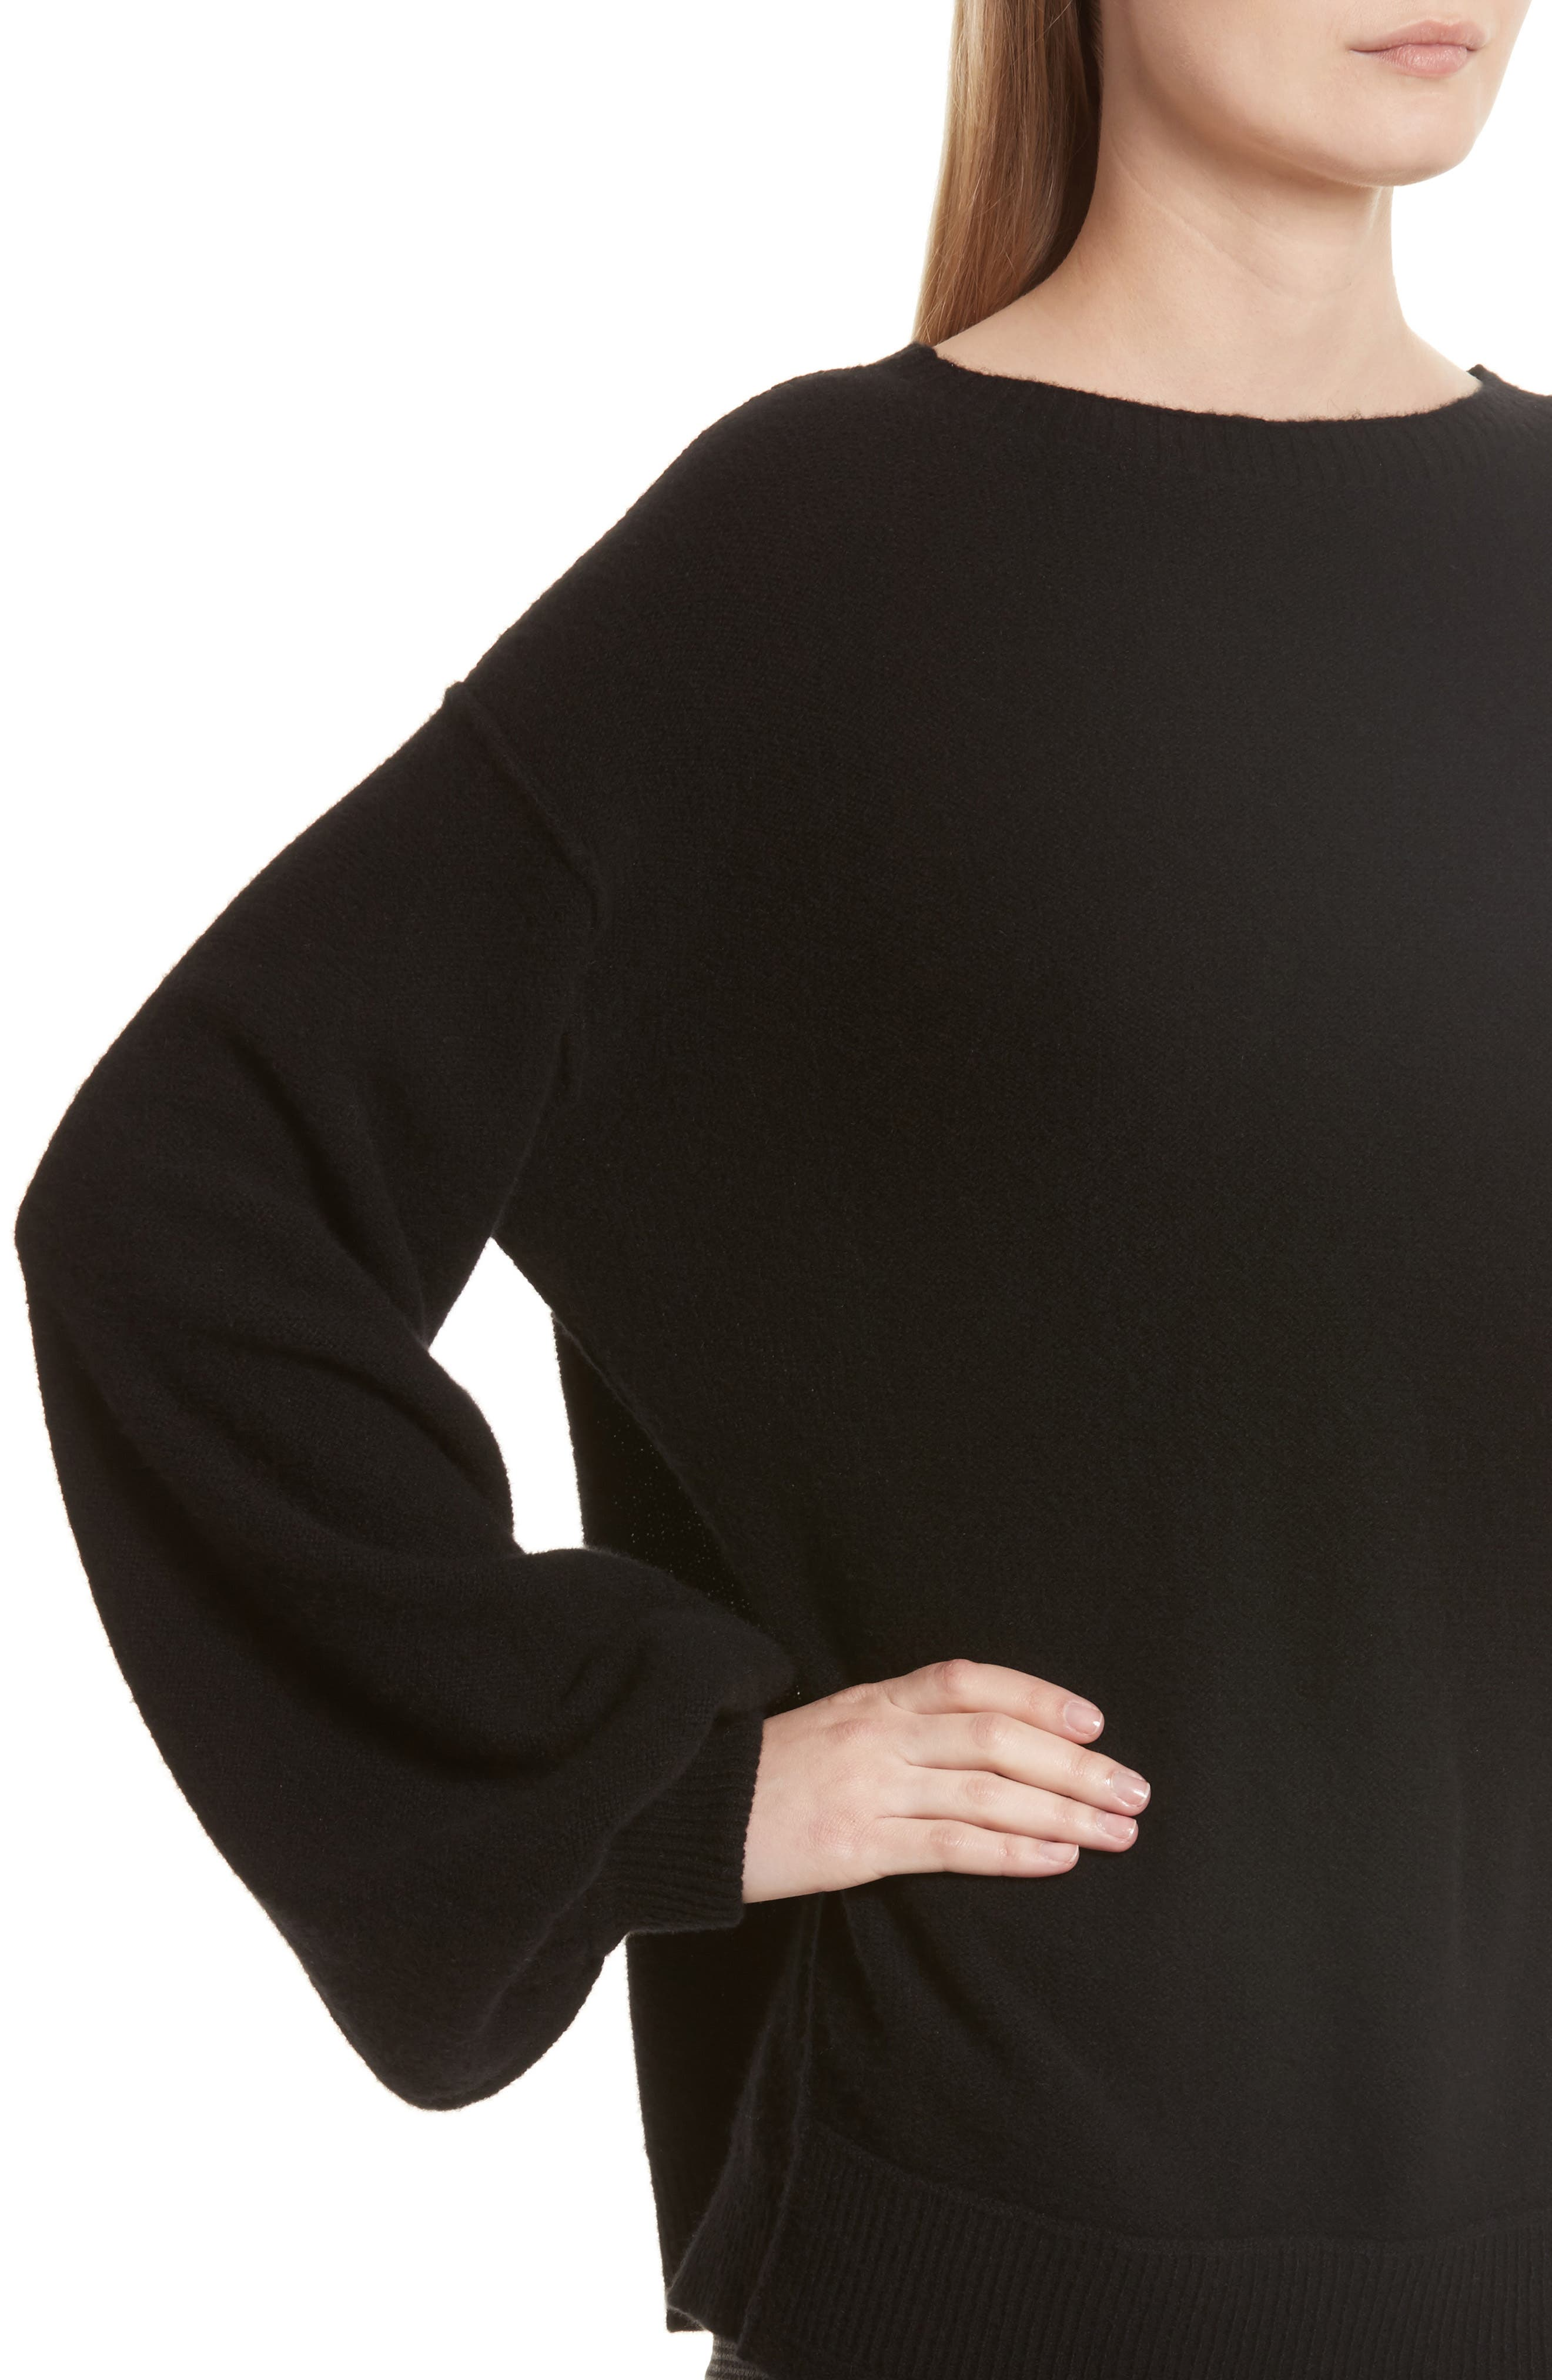 Balloon Sleeve Wool & Cashmere Sweater,                             Alternate thumbnail 4, color,                             001